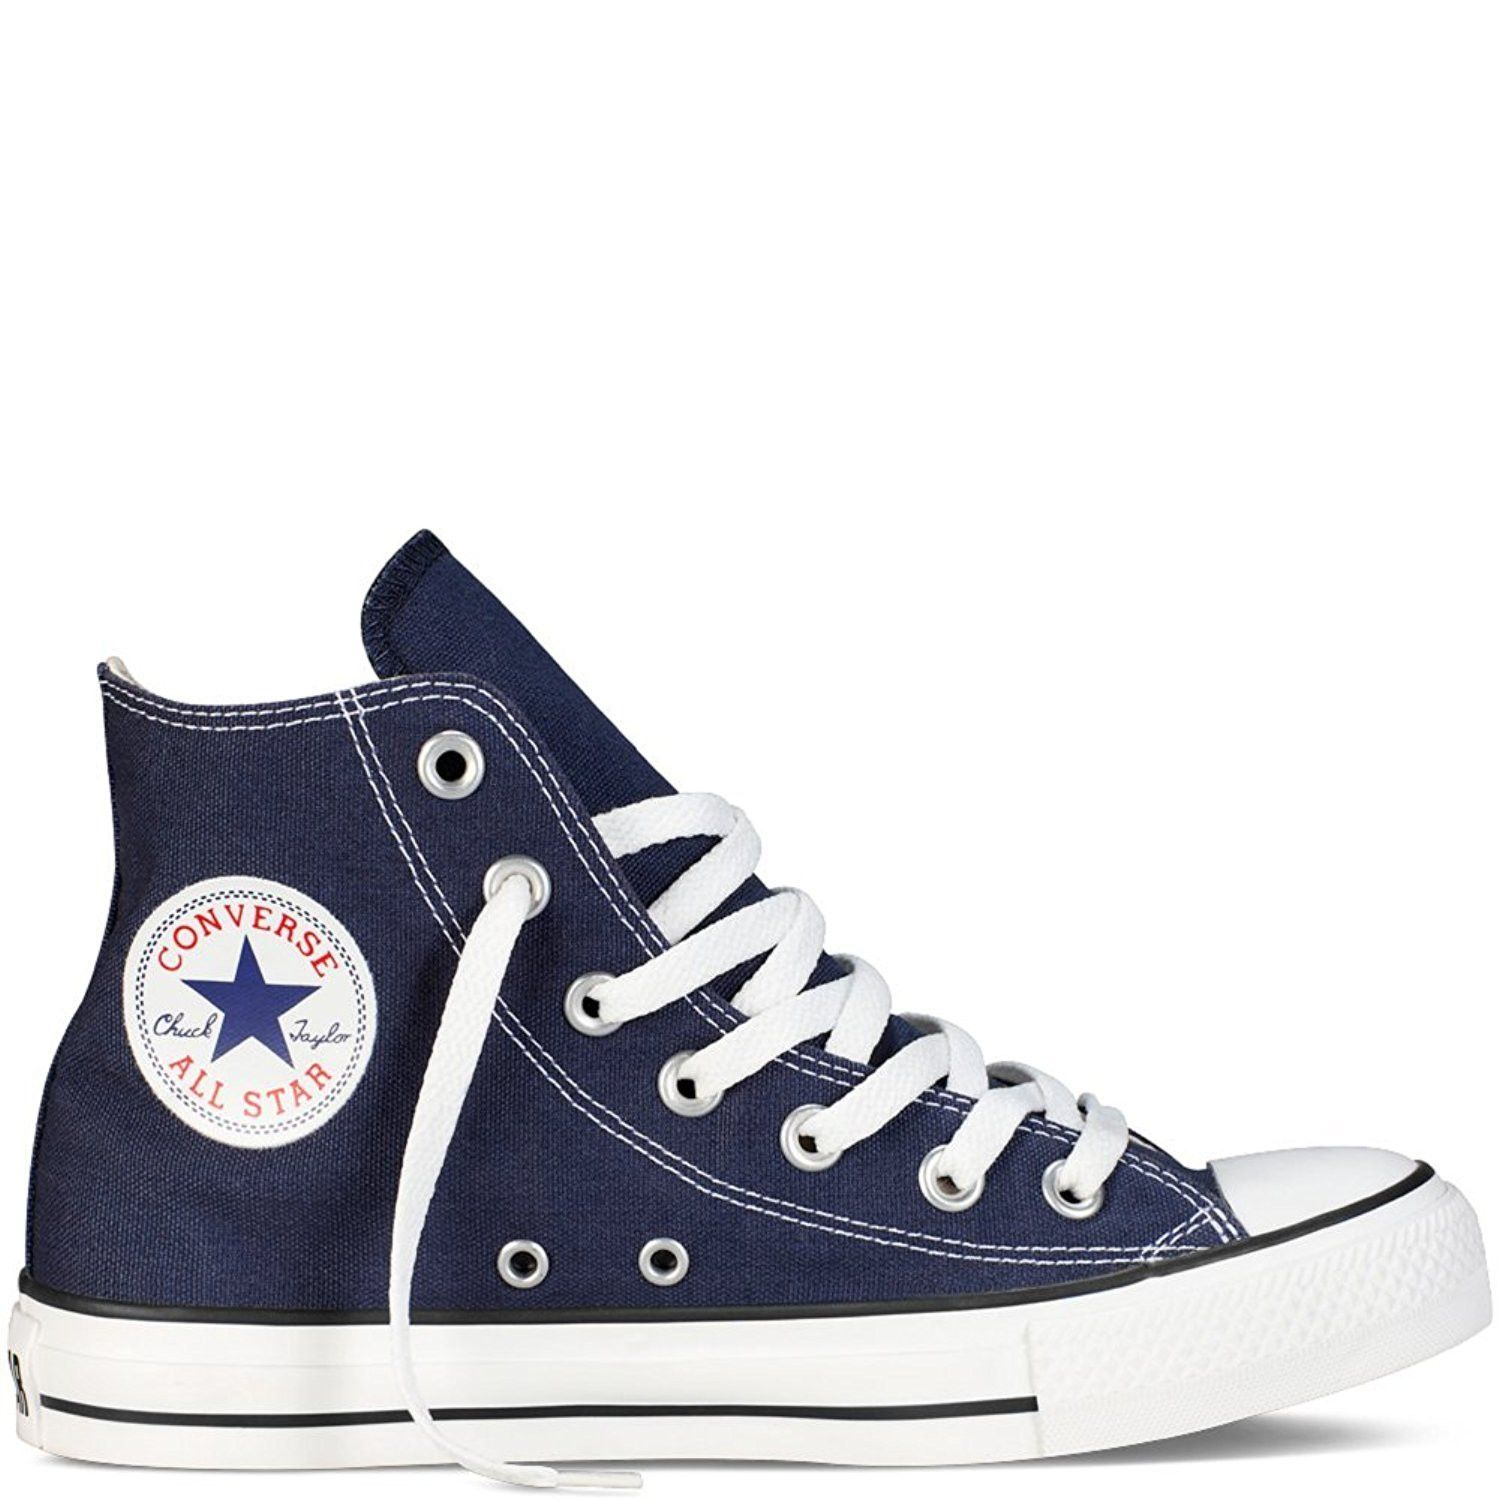 NEW Mens Chuck Taylor All Star High Top Sneakers Navy Blue AUTHENTIC IN BOX